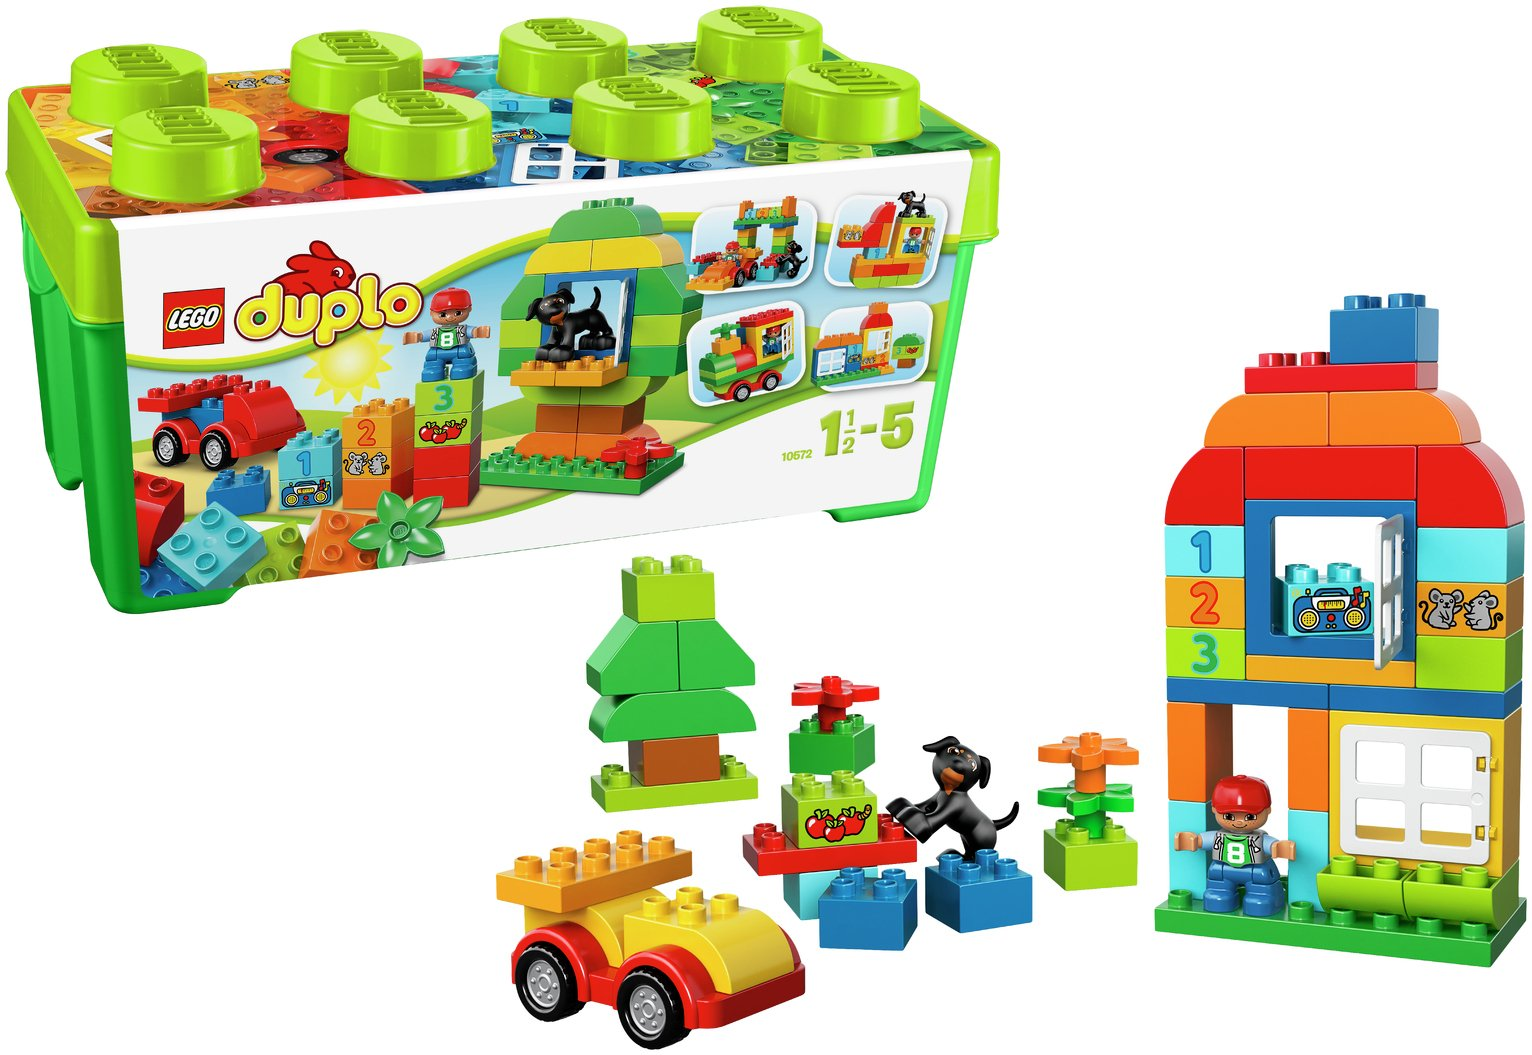 Image of LEGO DUPLO All-In-One Box of Fun Set - 10572